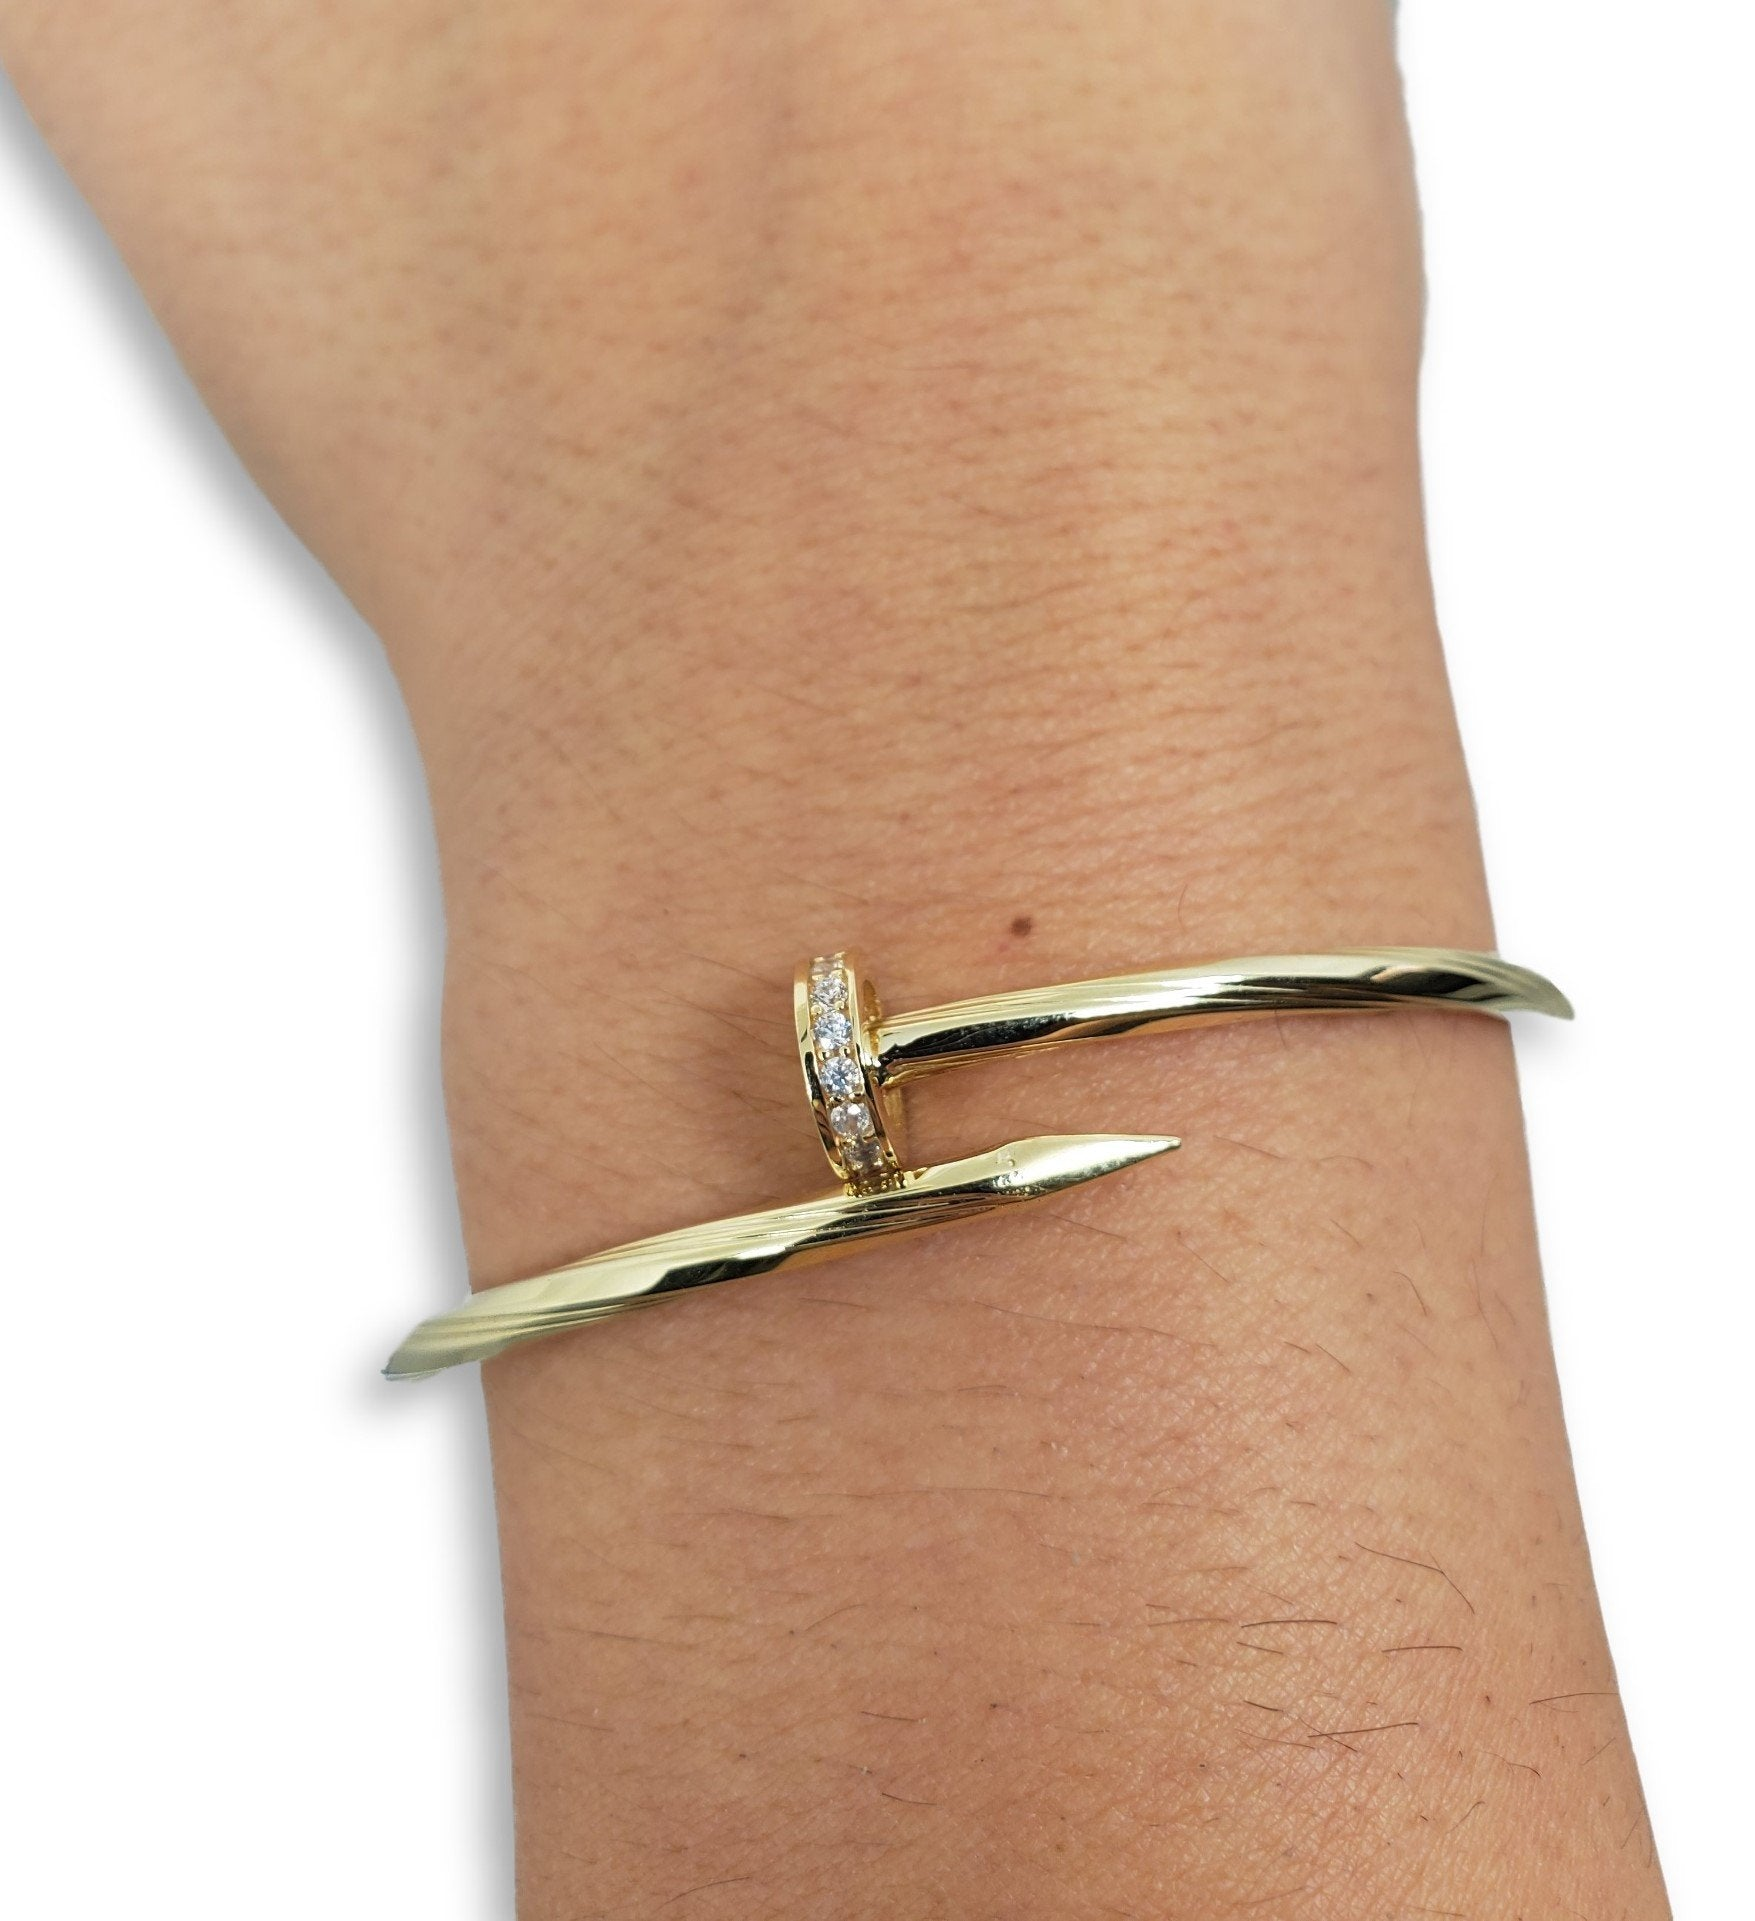 Bracelet5 en or 10K / Bangle5 in 10K gold - orquebec